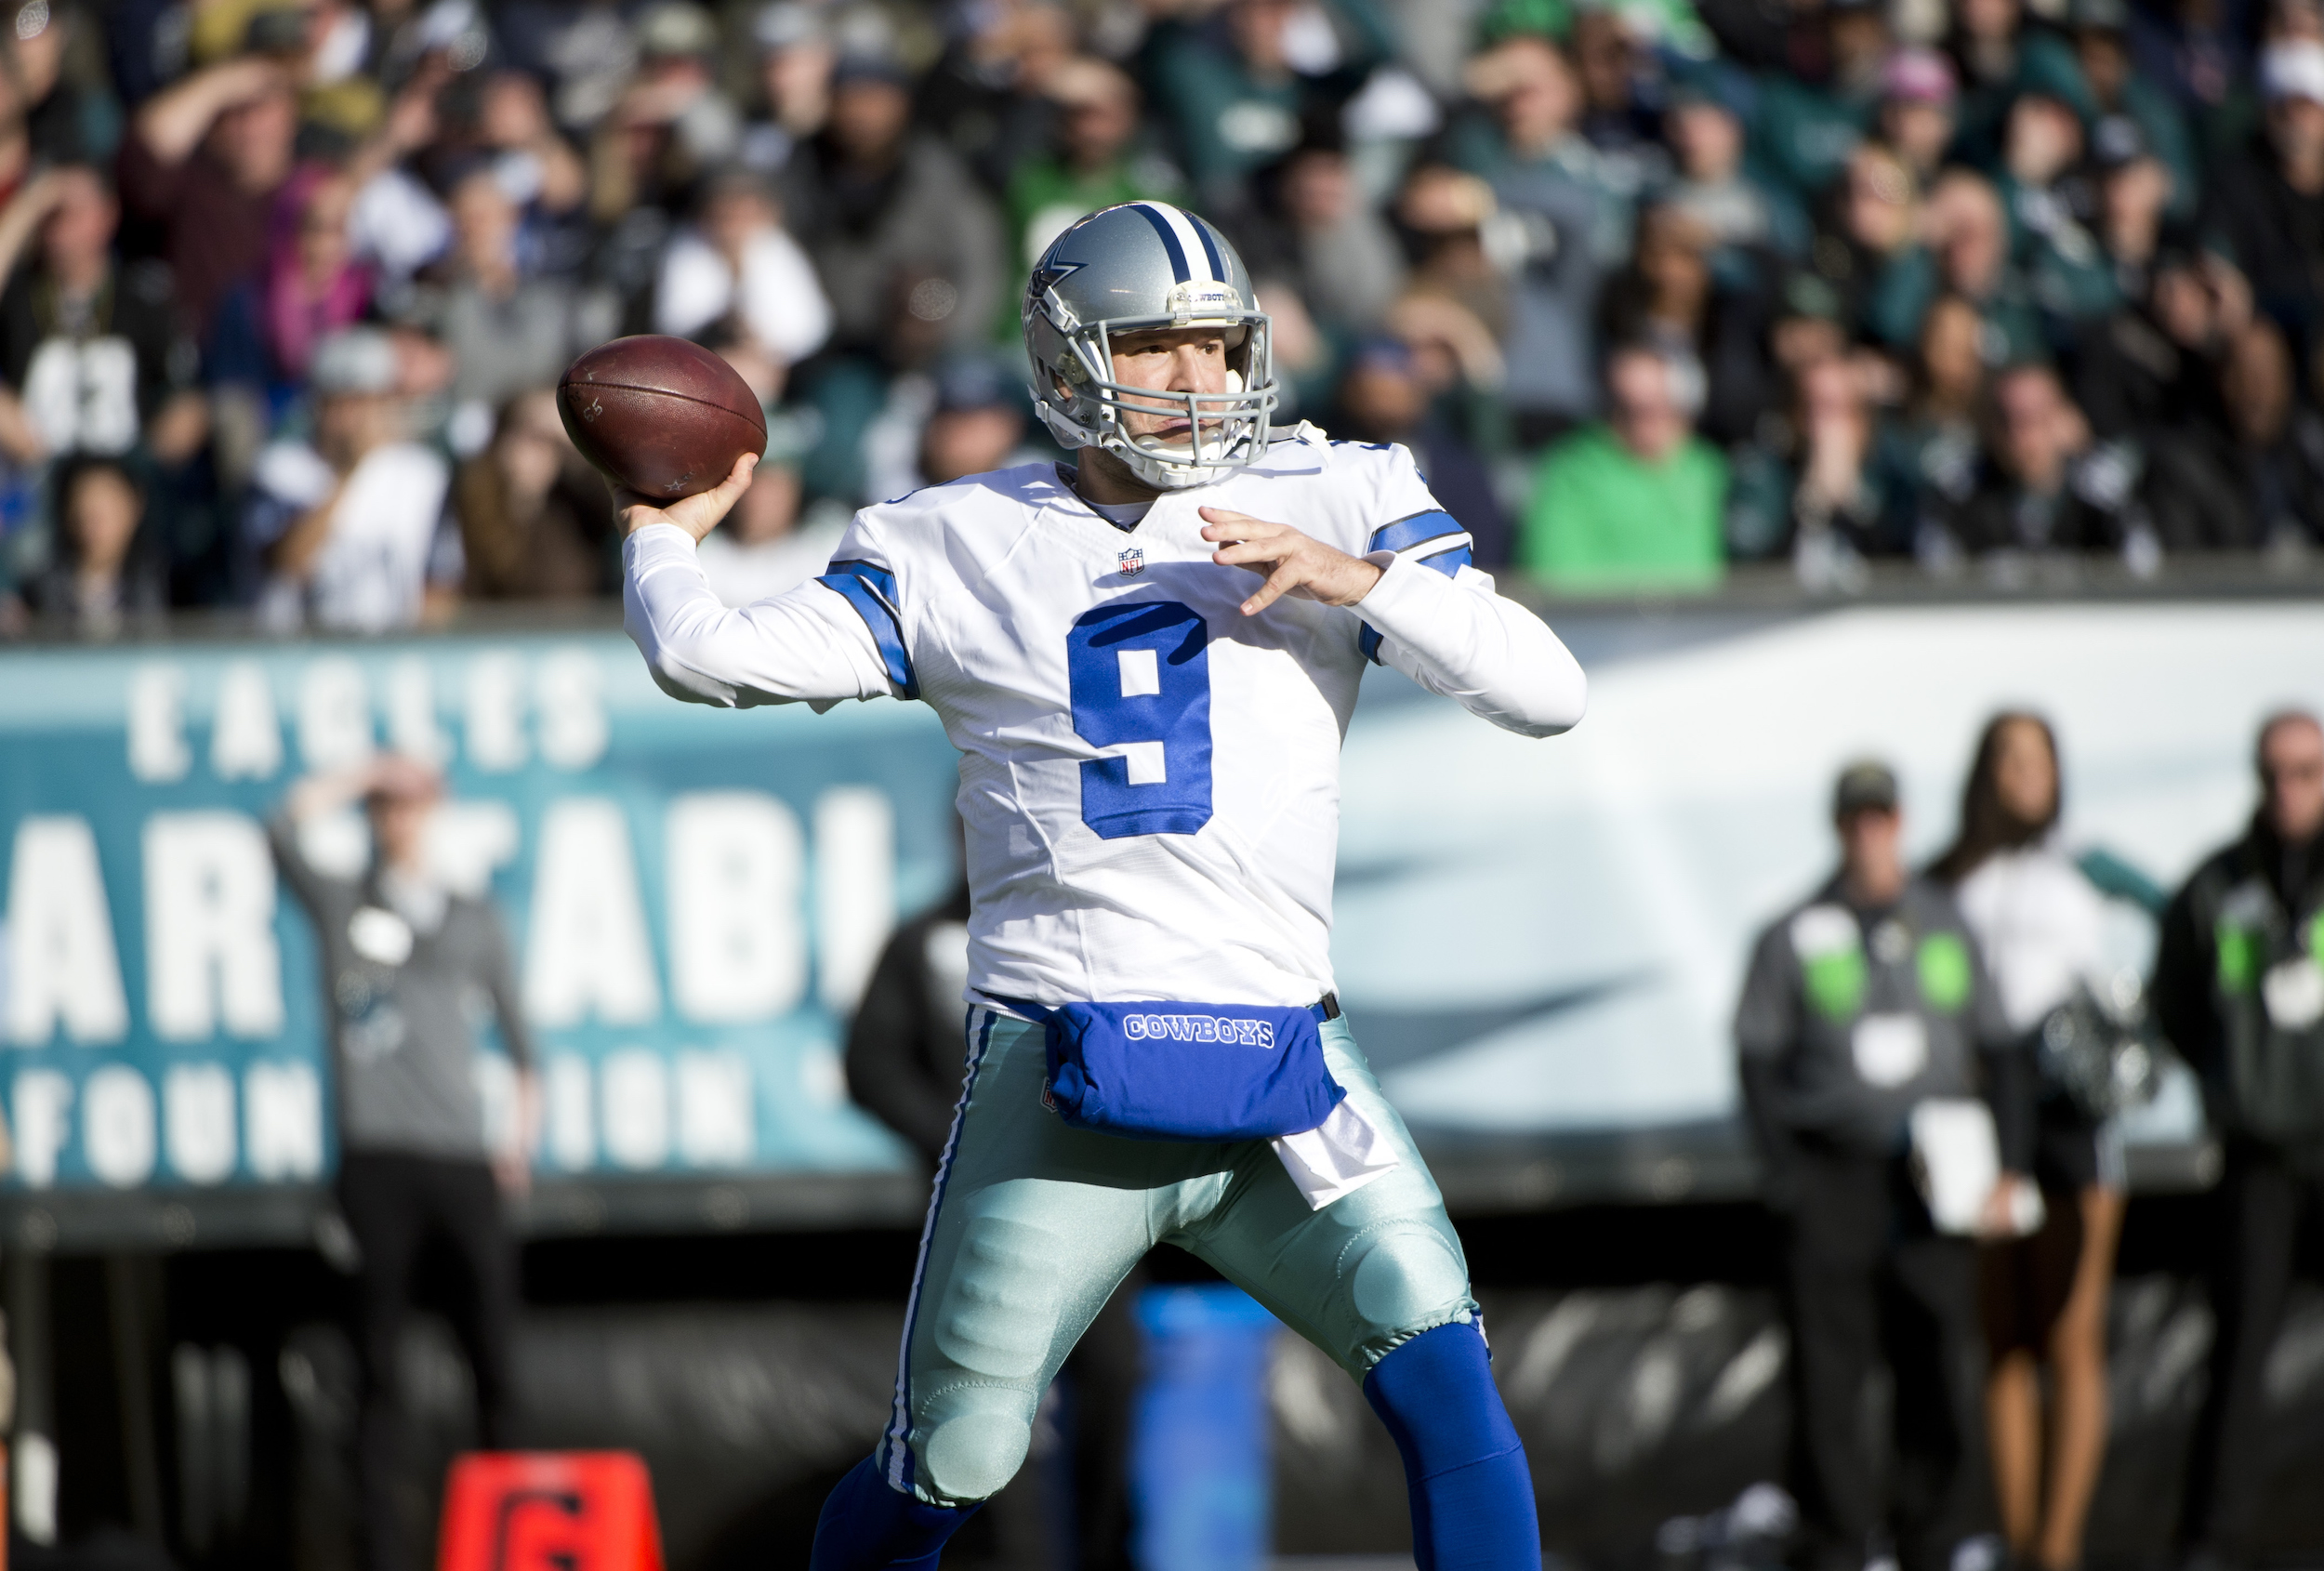 Tony Romo Channeled His NFL Failures To Build a Record-Setting Broadcasting Career